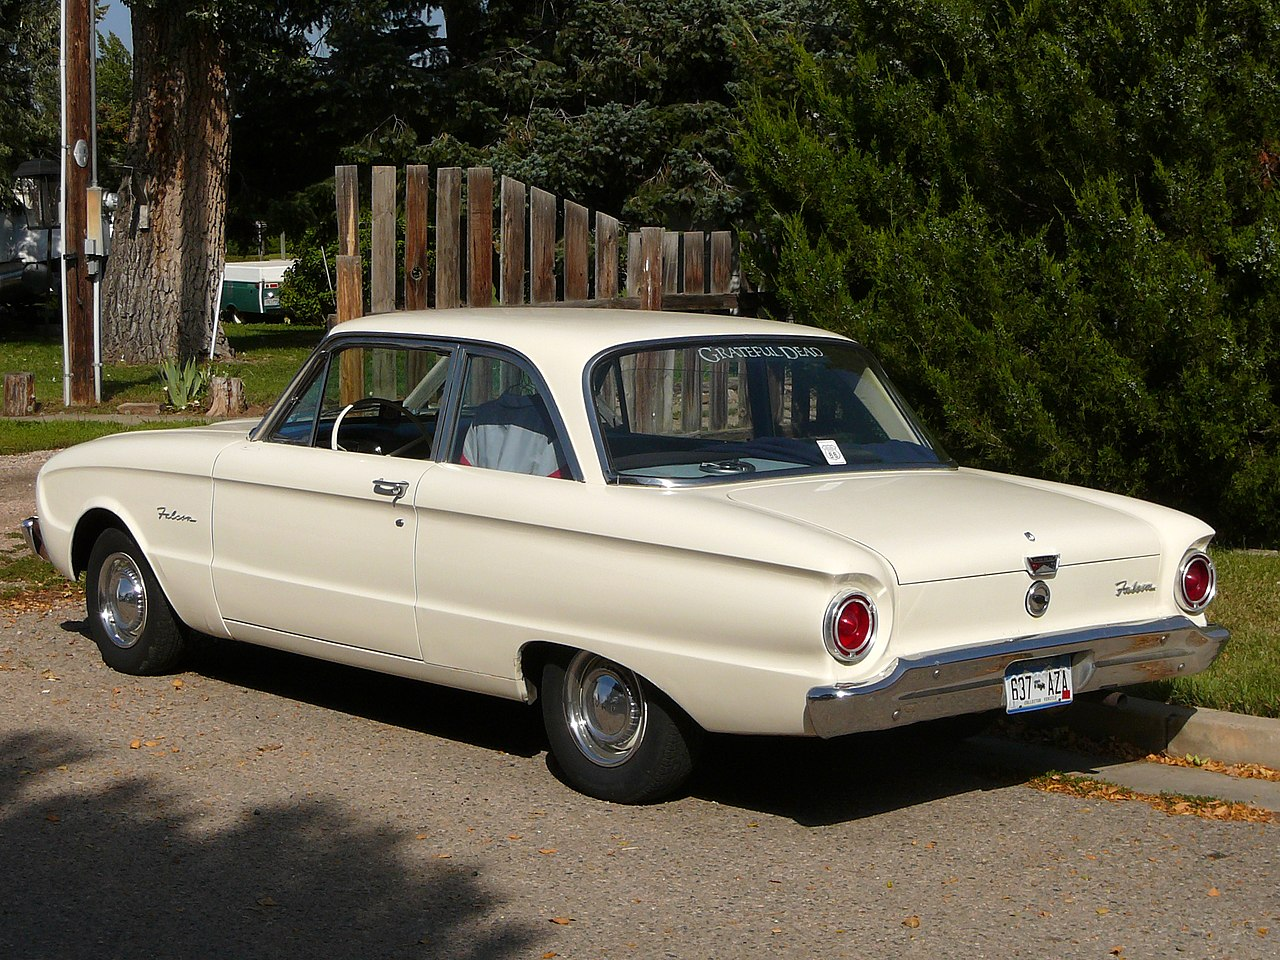 File:1960 Ford Falcon.jpg - Wikimedia Commons on amc amx wiring diagrams, chrysler lebaron wiring diagrams, volvo 240 wiring diagrams, dodge dakota wiring diagrams, jeep wrangler wiring diagrams, imperial wiring diagrams, ford ranchero seats, peterbilt wiring diagrams, ford ranchero engine, oldsmobile alero wiring diagrams, mercury sable wiring diagrams, ford ranchero parts, jeep cj wiring diagrams, dodge ramcharger wiring diagrams, jeep patriot wiring diagrams, pontiac grand prix wiring diagrams, oldsmobile 98 wiring diagrams, plymouth barracuda wiring diagrams, chrysler concorde wiring diagrams, saab 9-3 wiring diagrams,